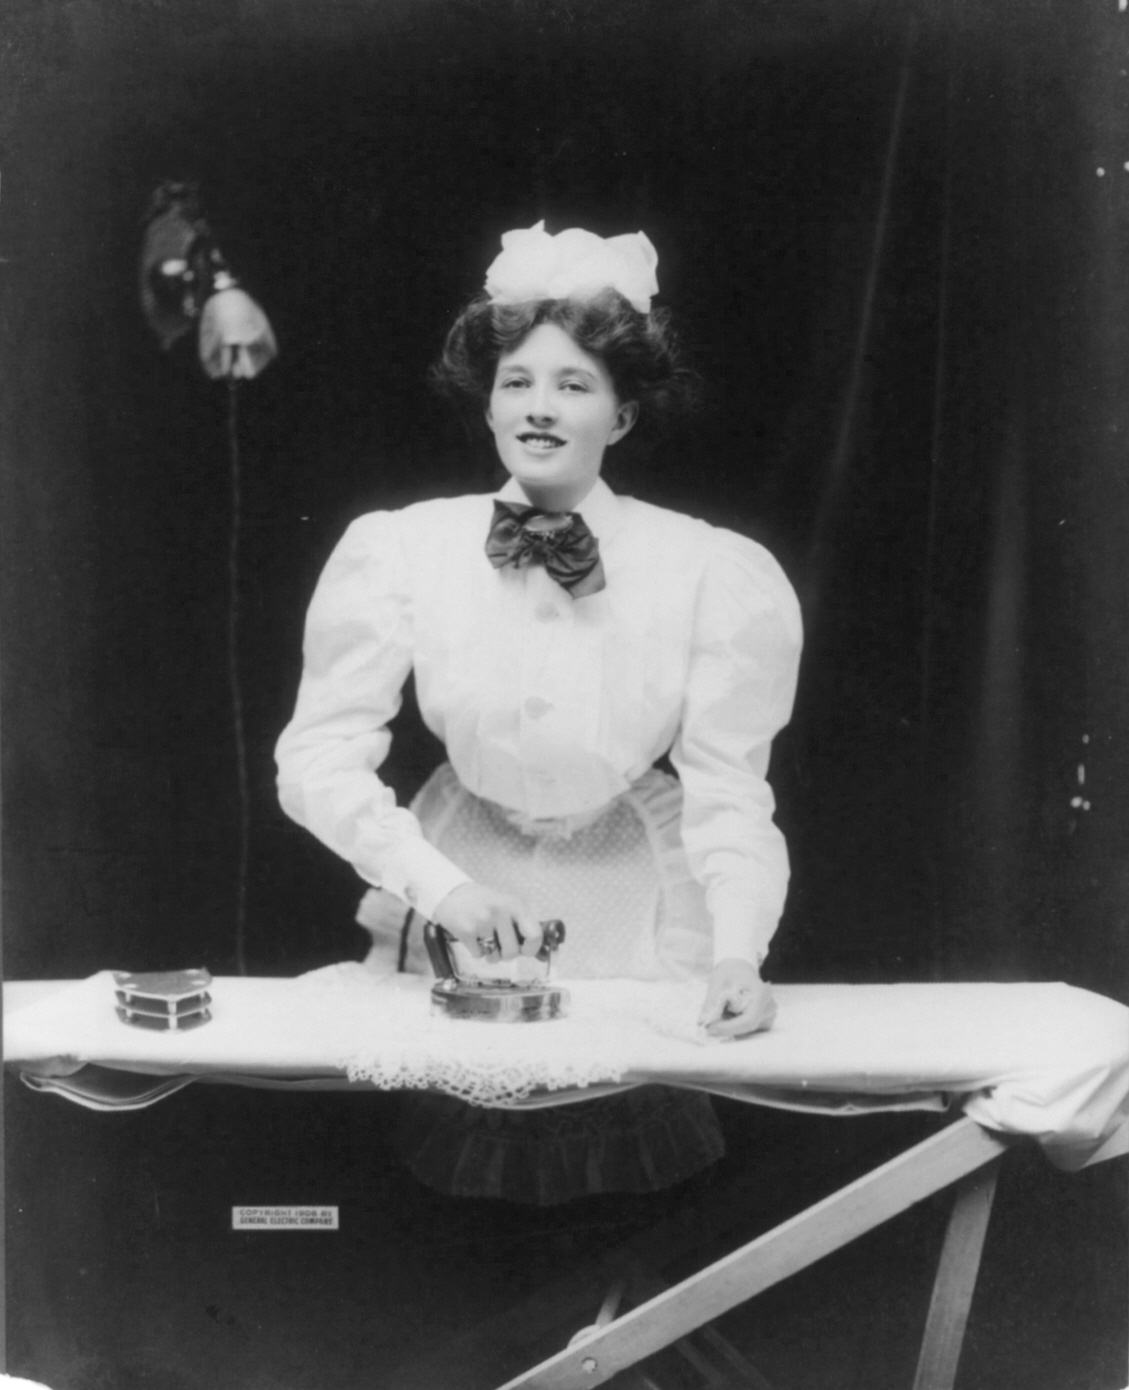 Electric Irons From The 1900s ~ Bügeleisen wikipedia